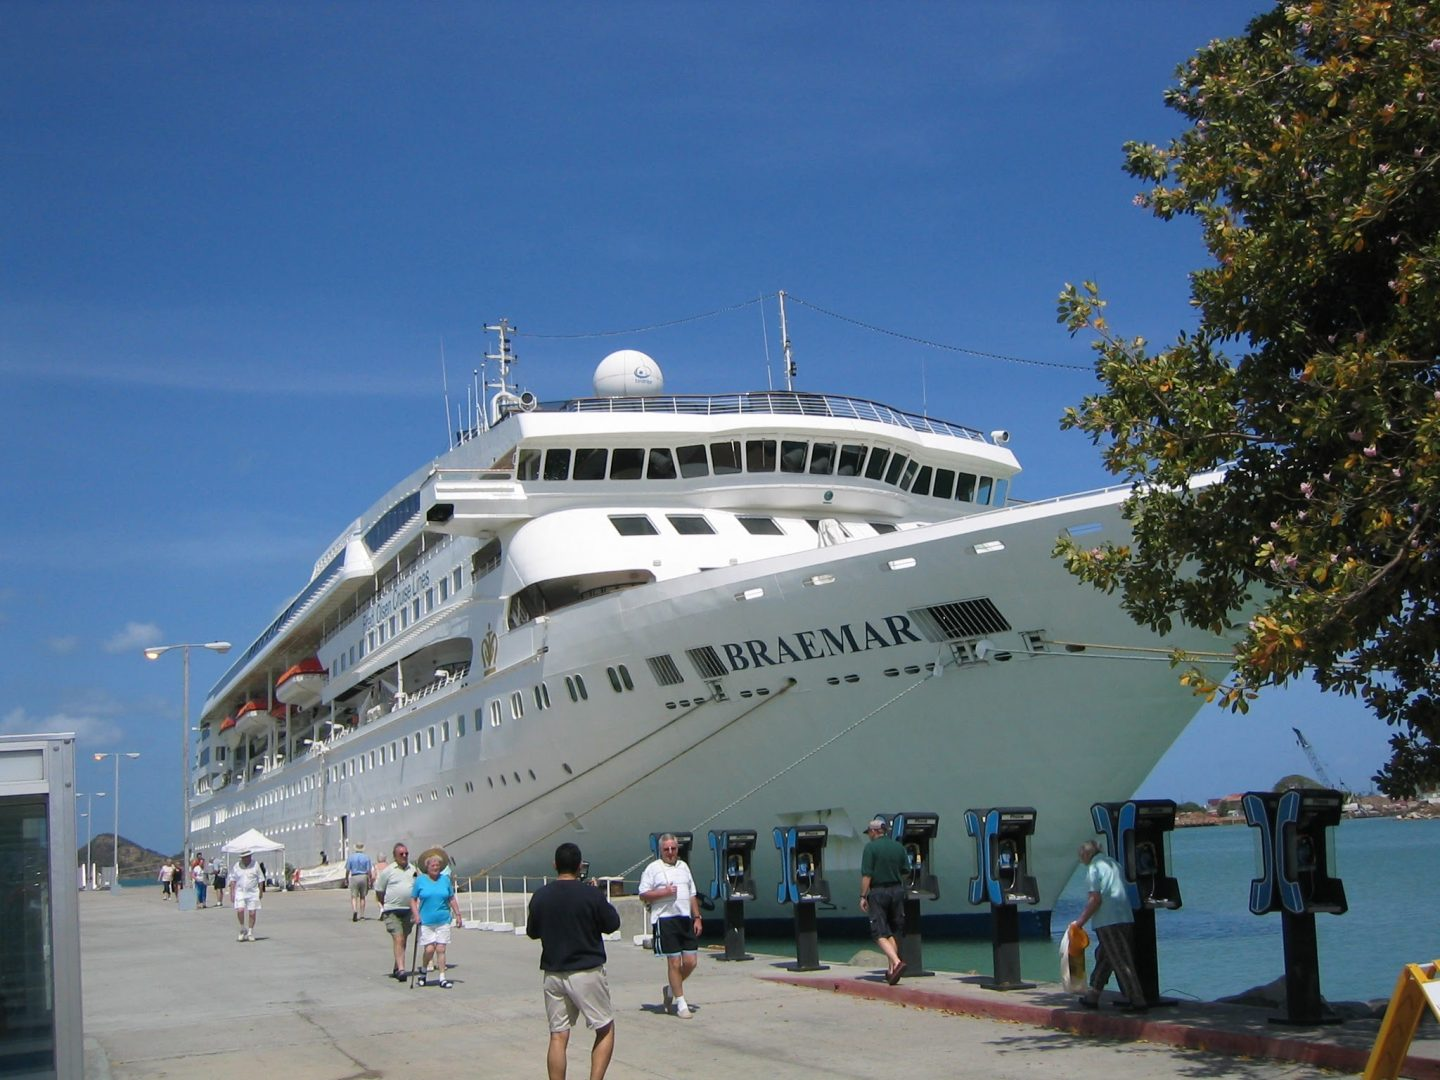 Cruise ship in Saint John's, Antigua